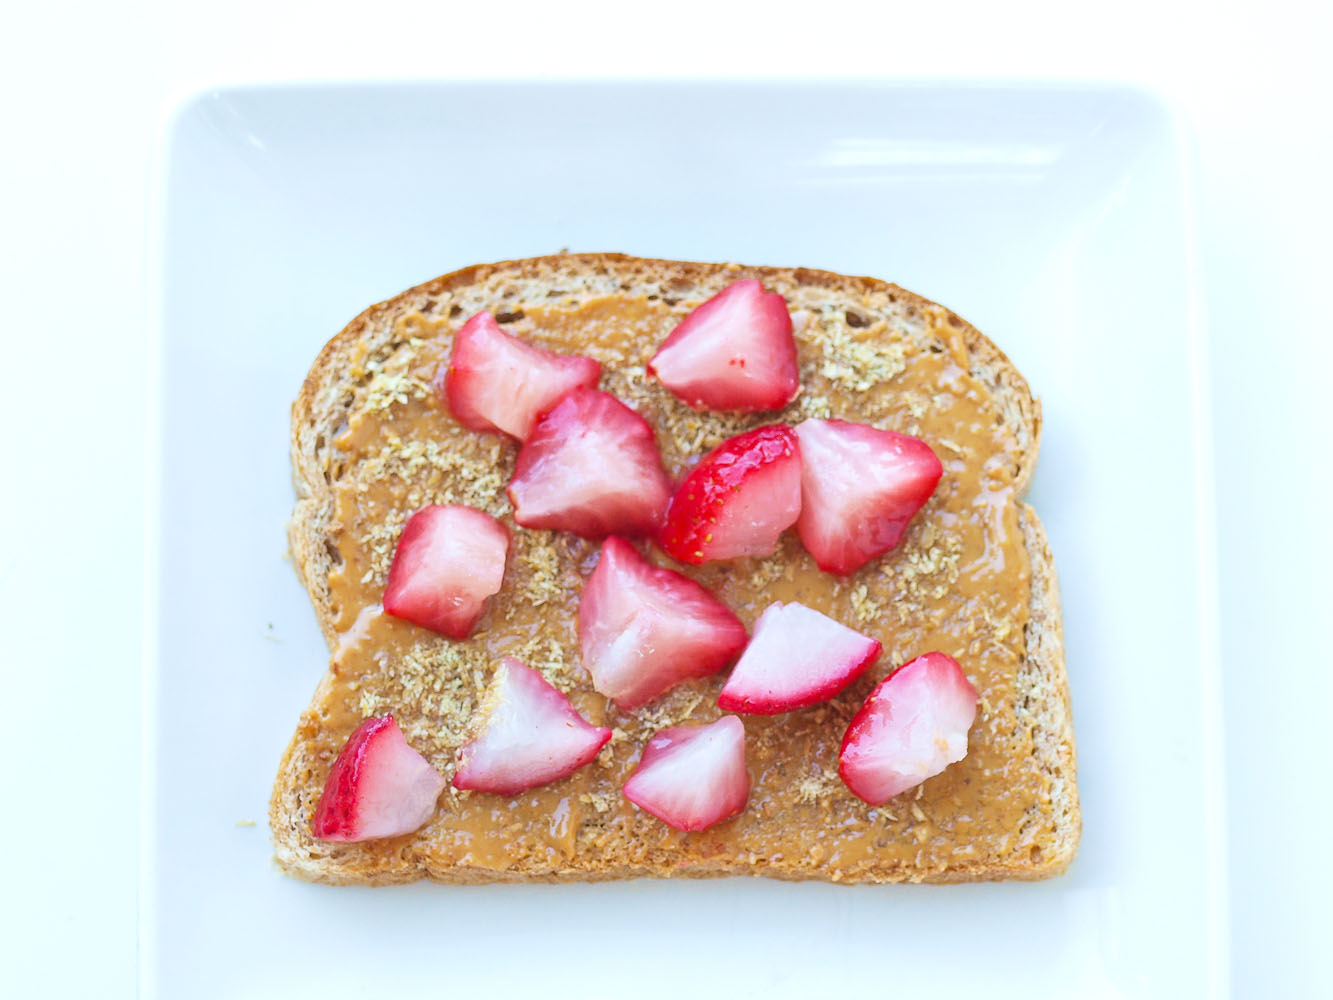 10 Ways to Make Your Peanut Butter and Jelly Sandwich Healthier! If your children love PB&J, find out how you can make it the healthiest sandwich ever!